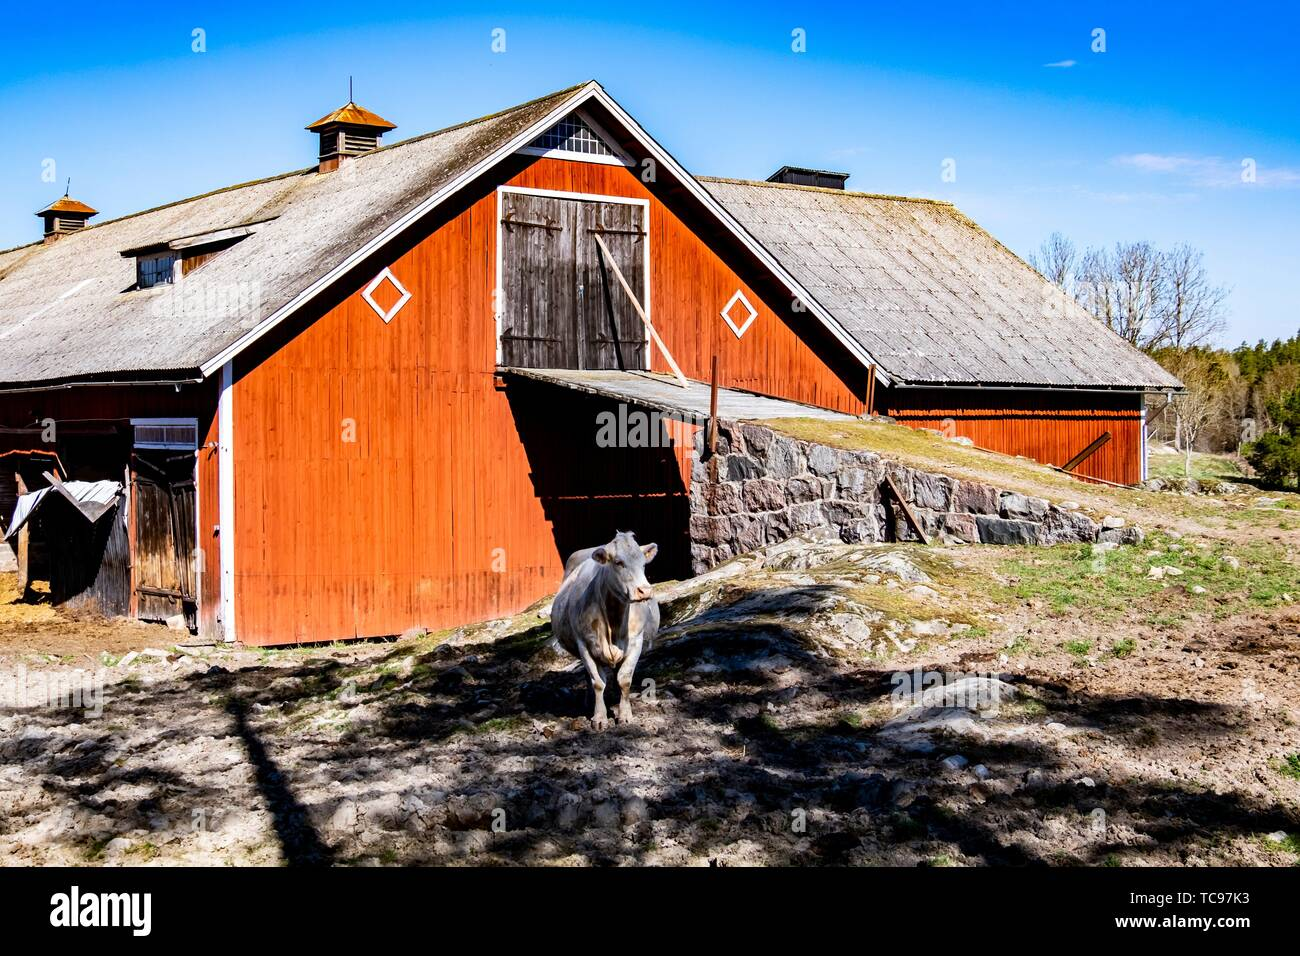 Cow in front of a typical Swedish barn, Sweden. - Stock Image